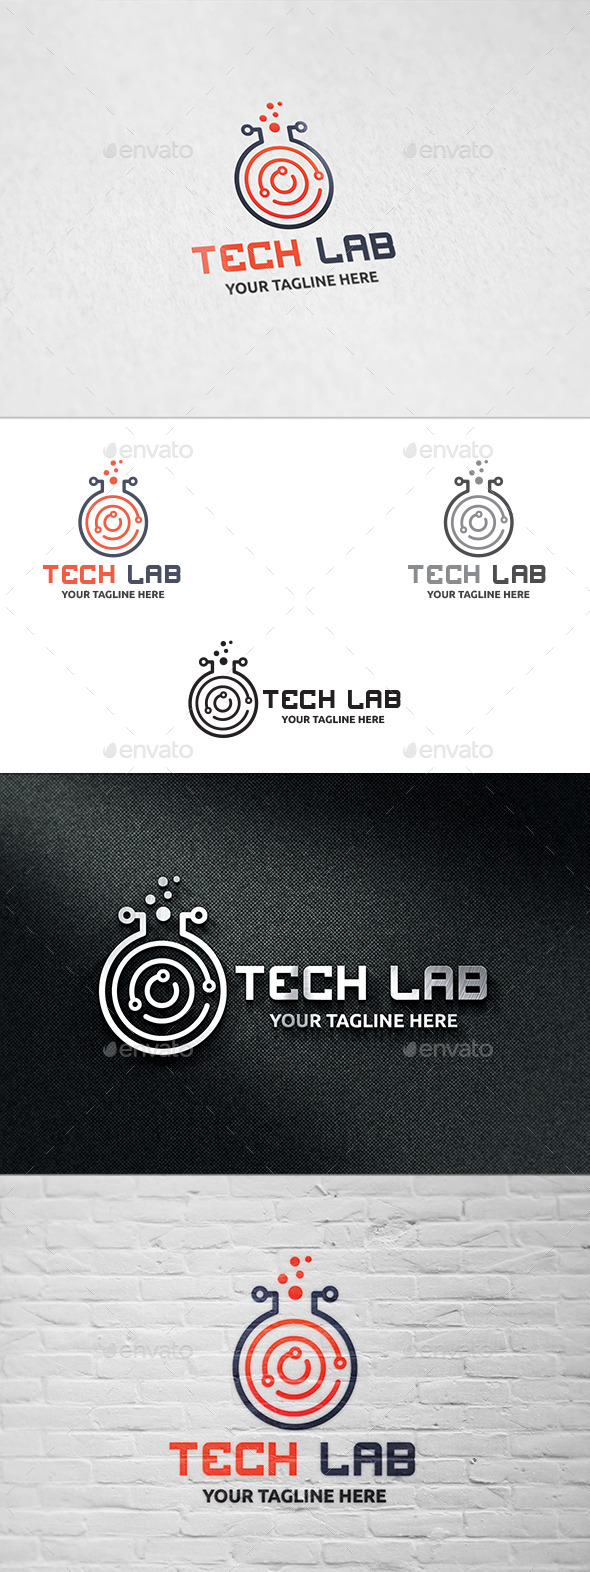 GraphicRiver Tech Lab Logo Template 10995434